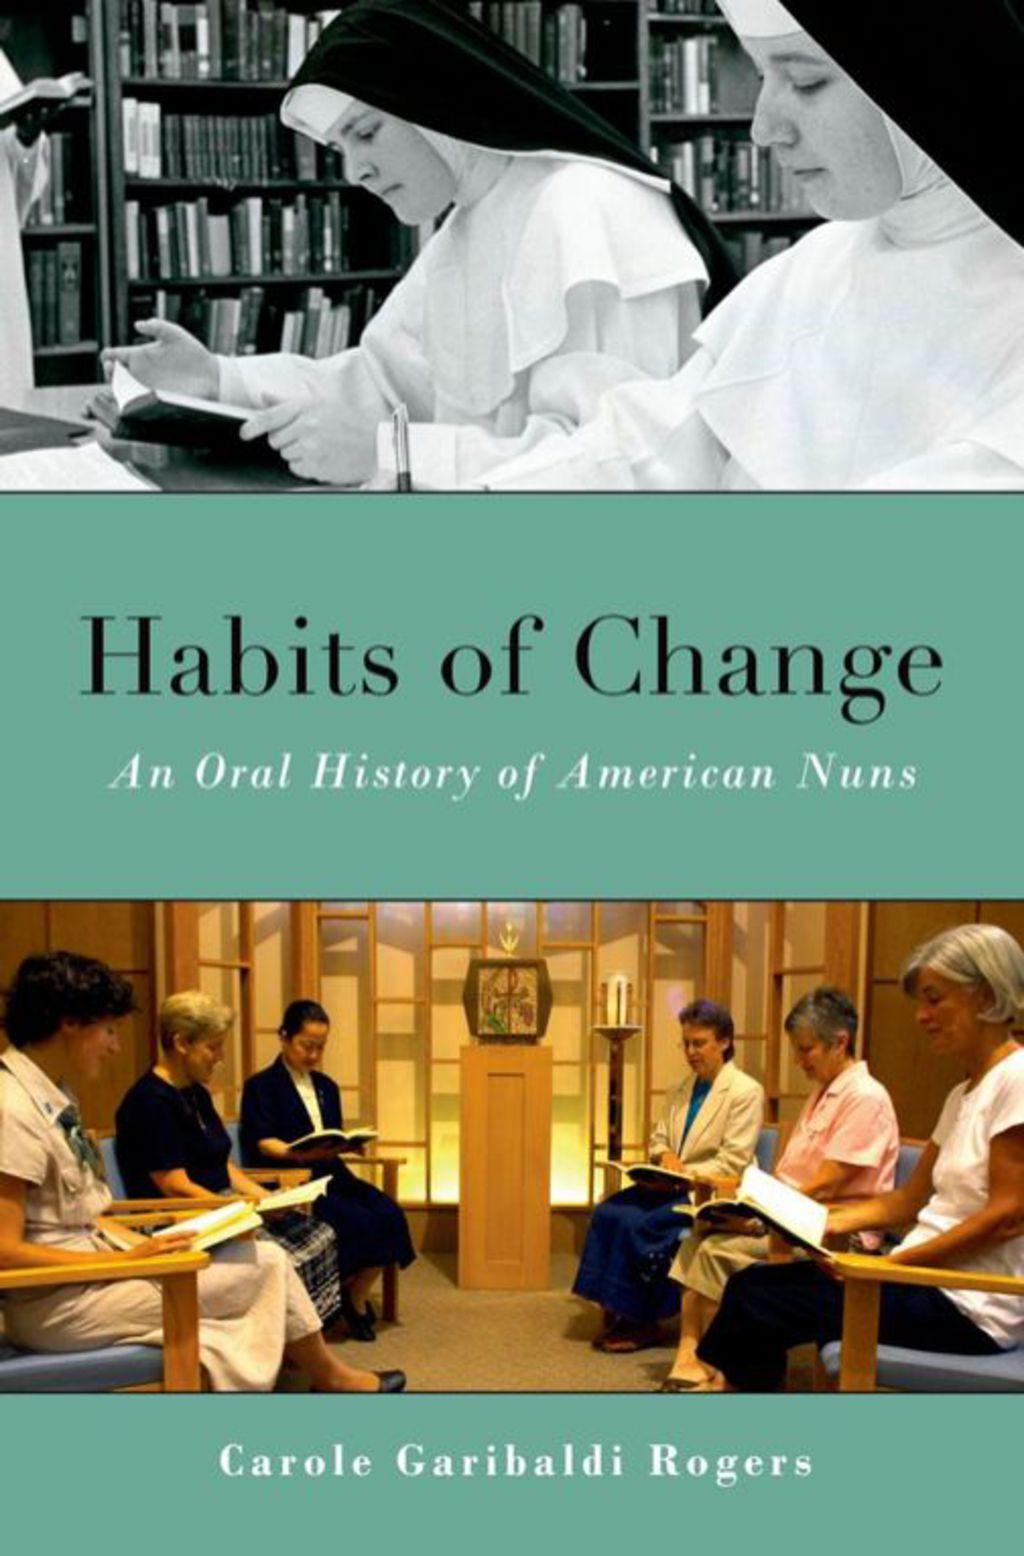 Habits of Change : An Oral History of American Nuns; An Oral History of American Nuns (ebook) eBooks